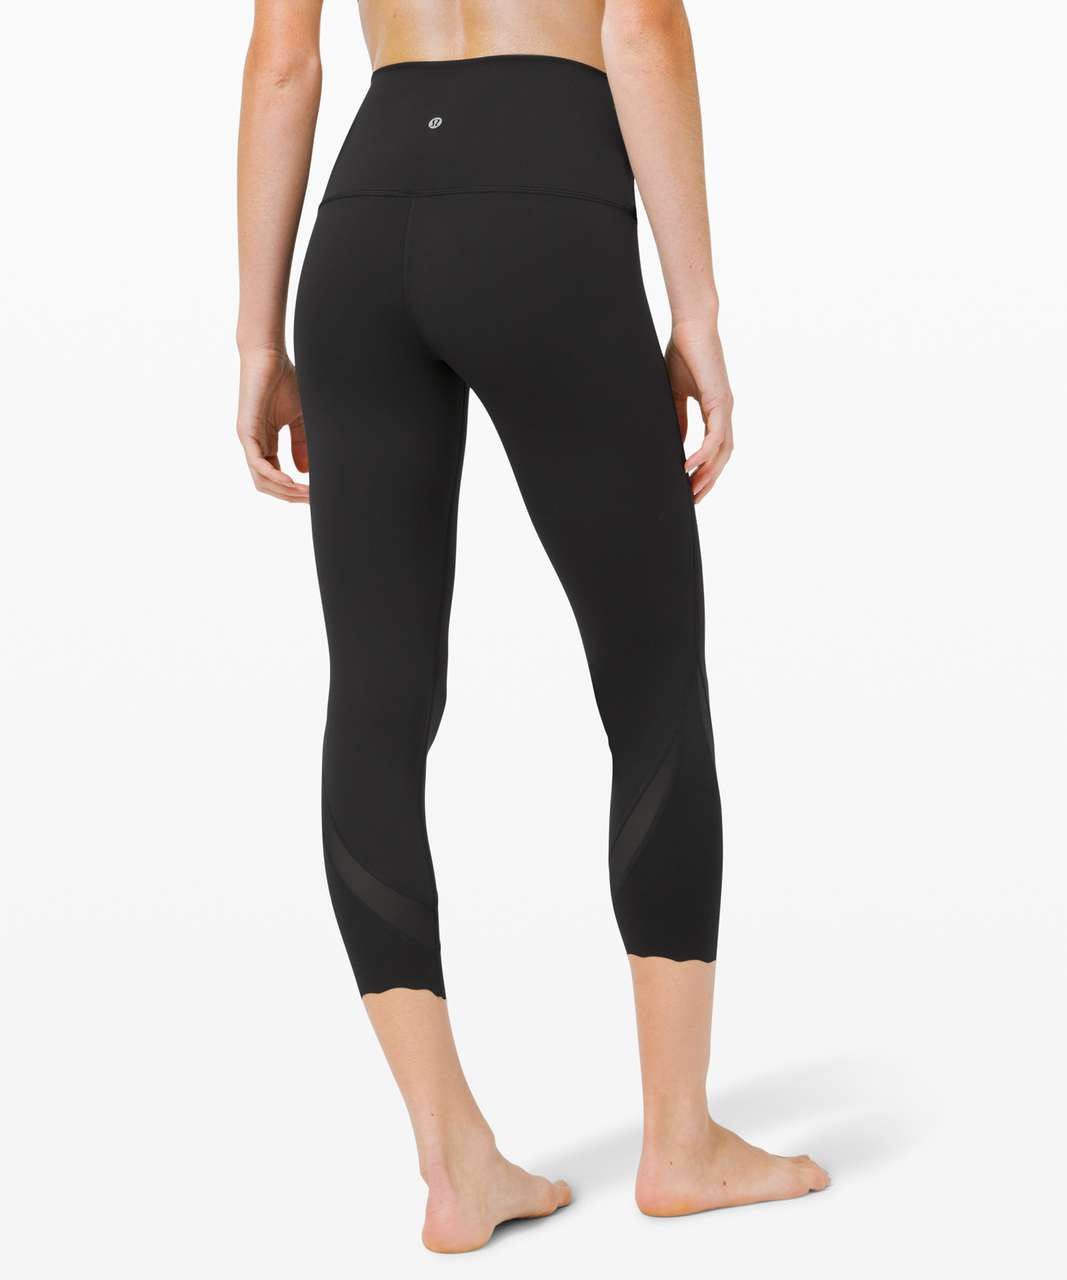 "Lululemon Wunder Under Crop High-Rise *Roll Down Scallop Full-On Luxtreme 23"" - Black"